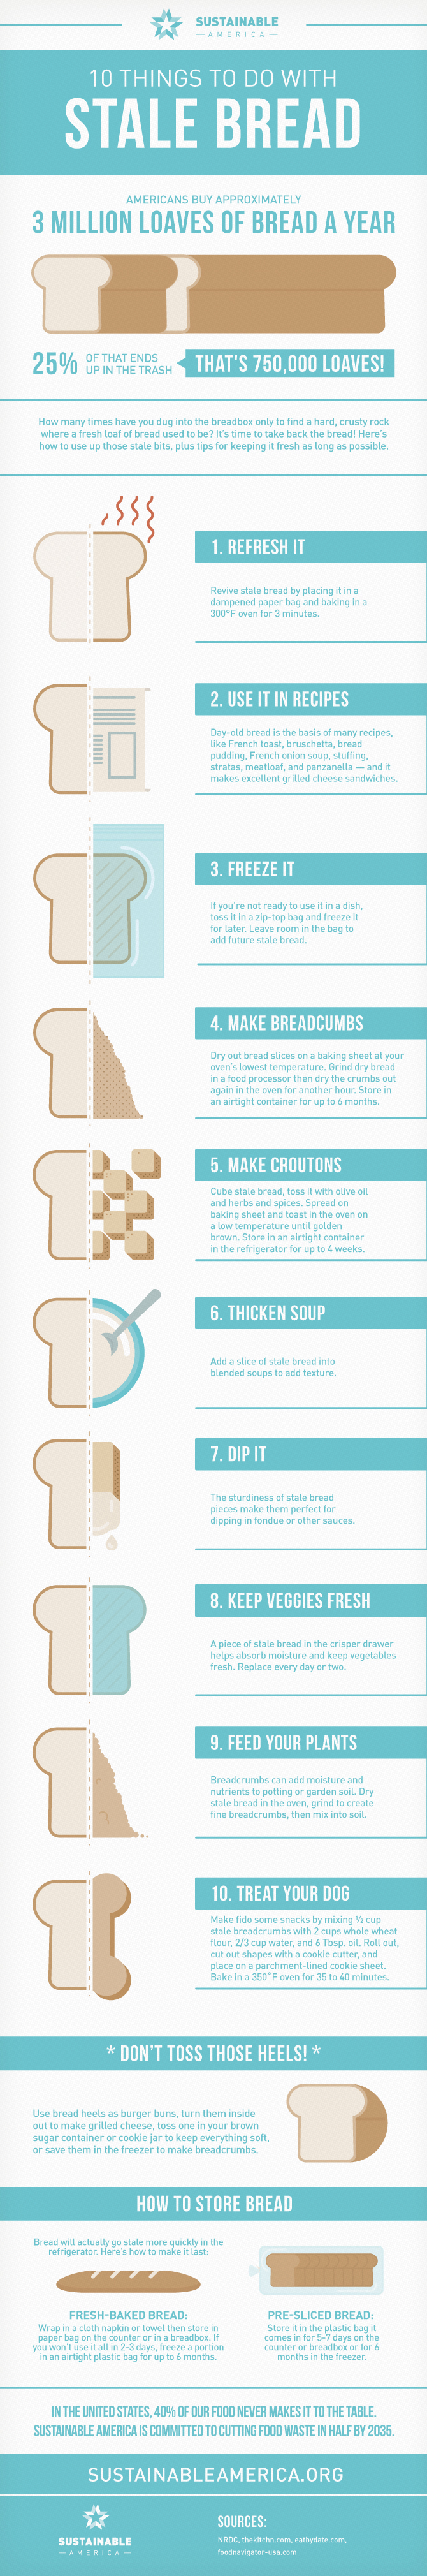 10 Things You Can Do With Stale Bread Infographic